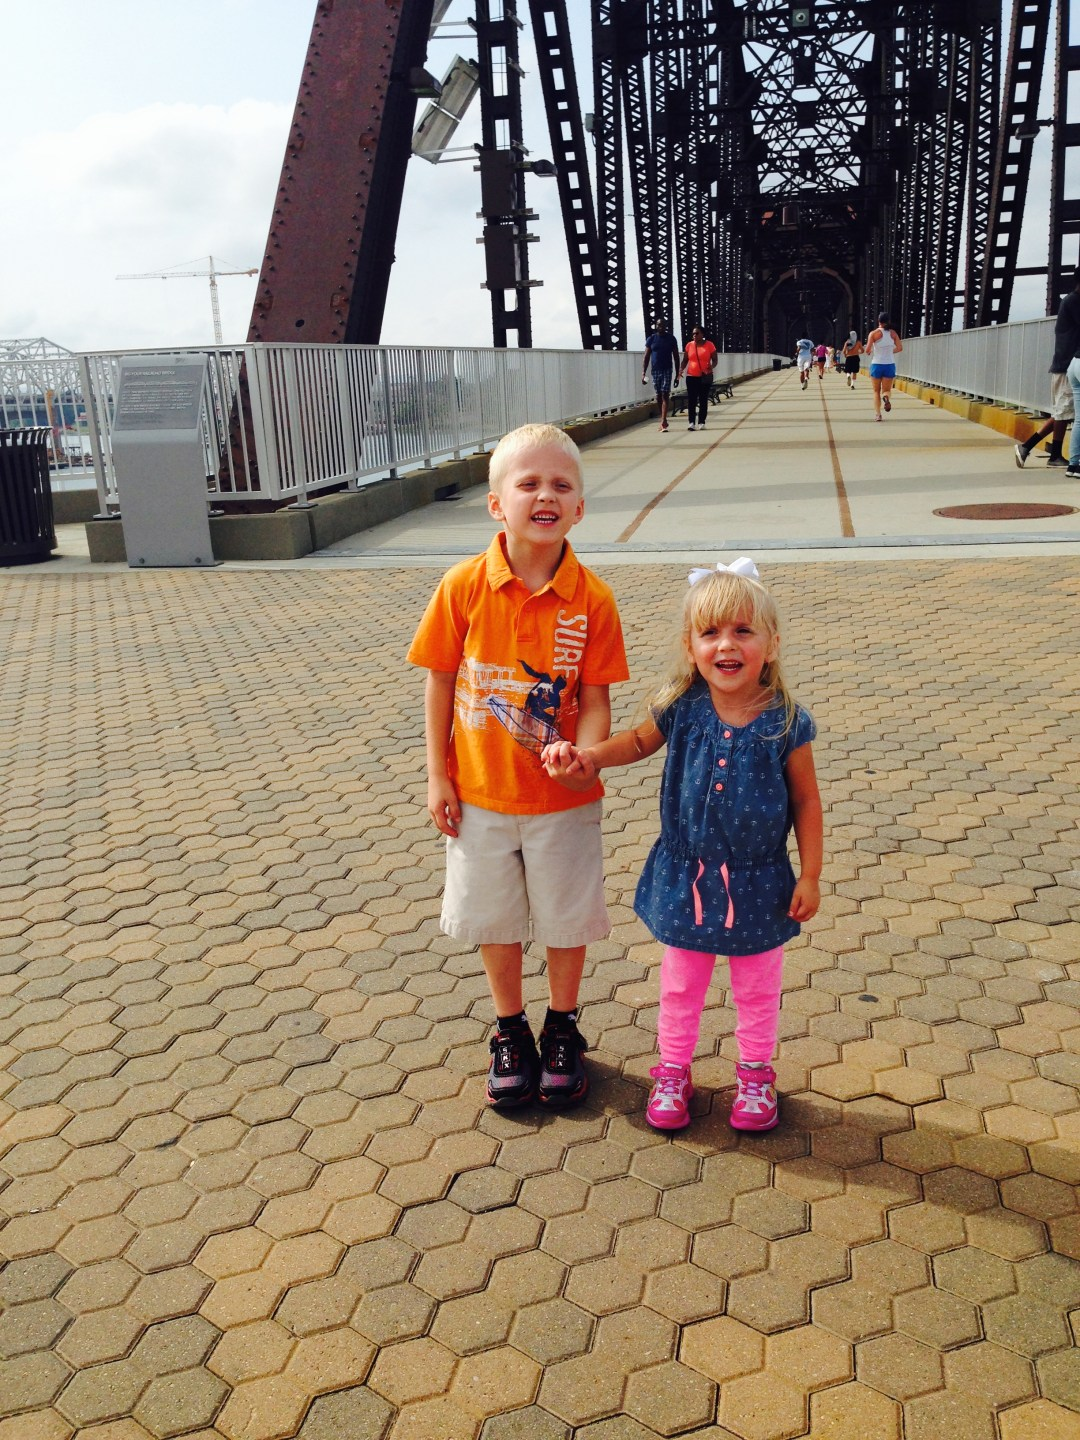 Dr. Hughes' children on the Big Four Bridge